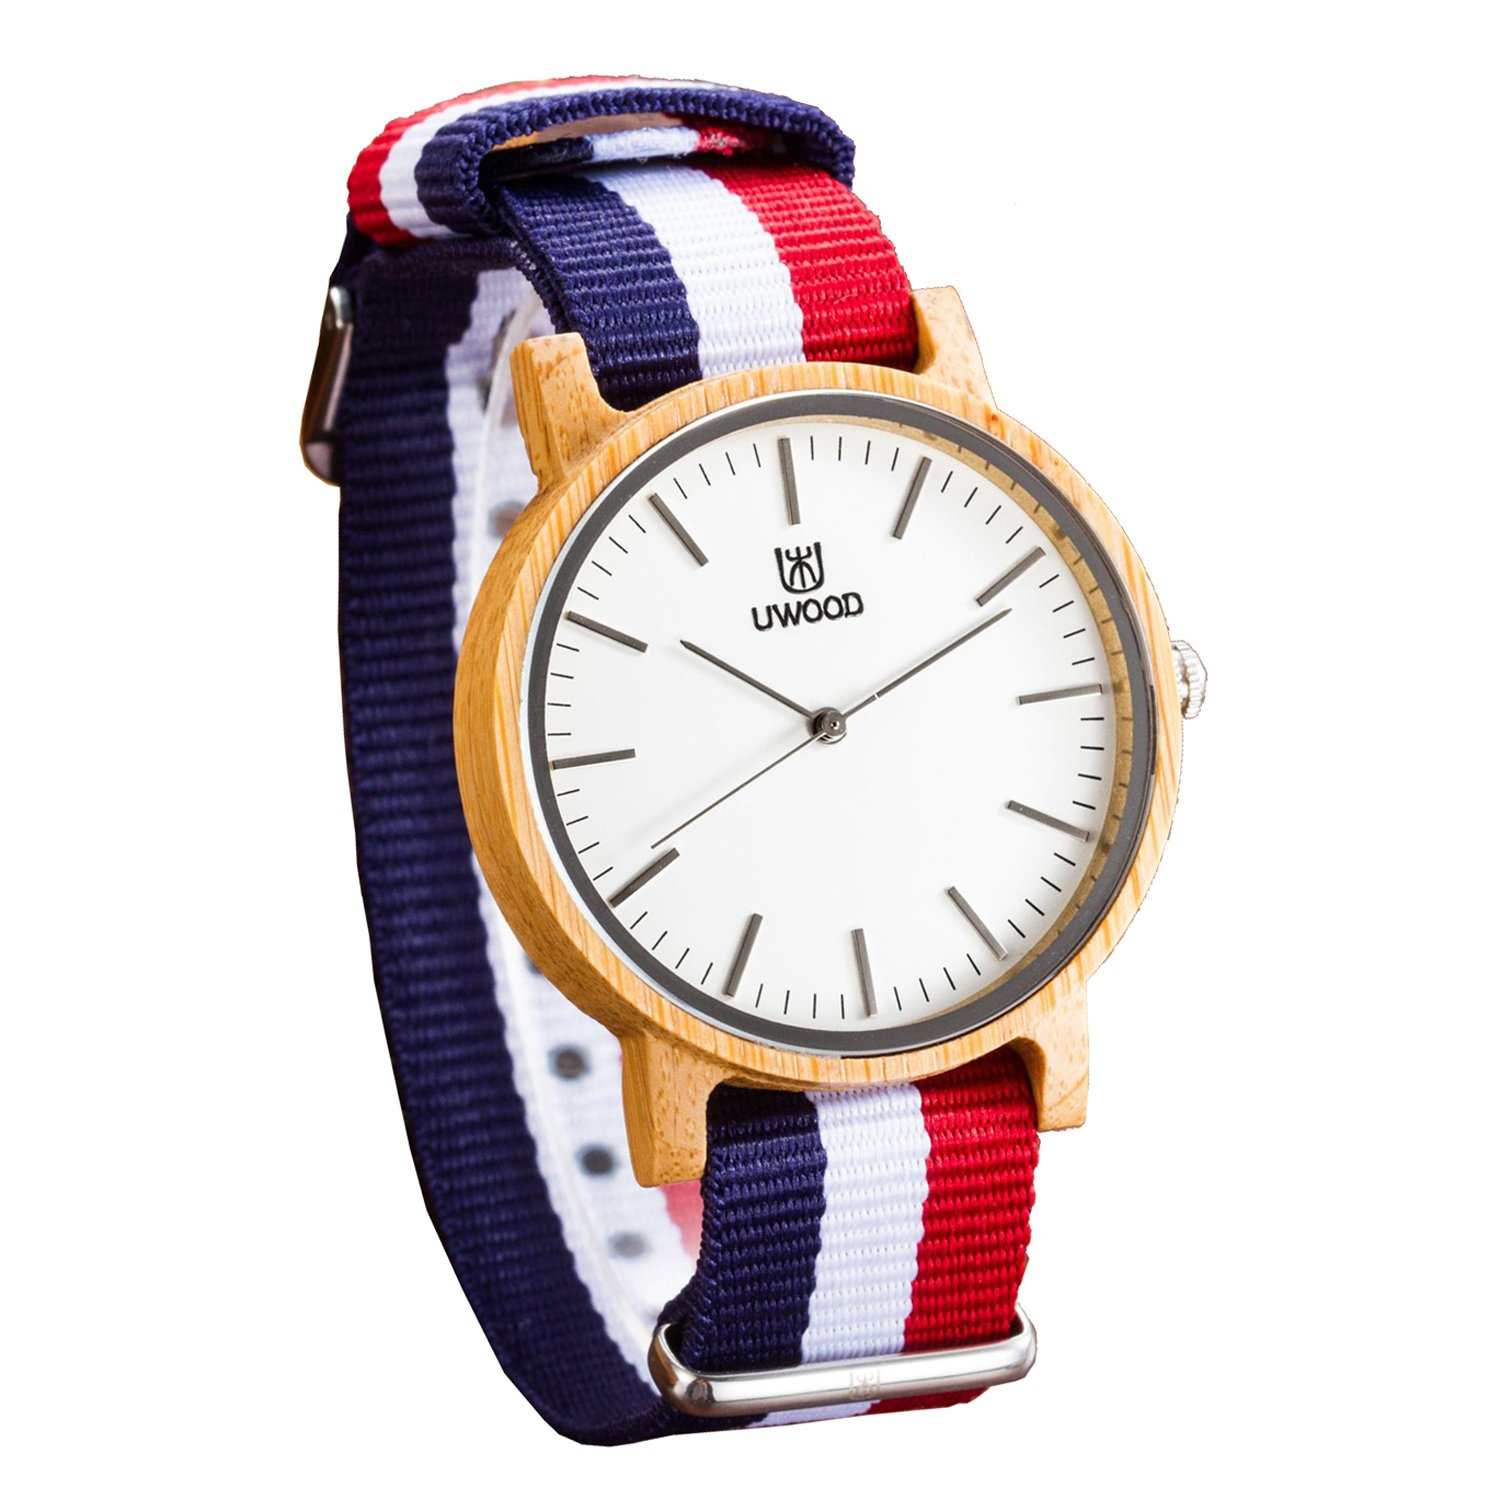 Unisex Wood Watch,UWOOD Analog Boys Wooden Watches,Casual Bamboo Wrist Watch with Nylon Multi-Color Strap